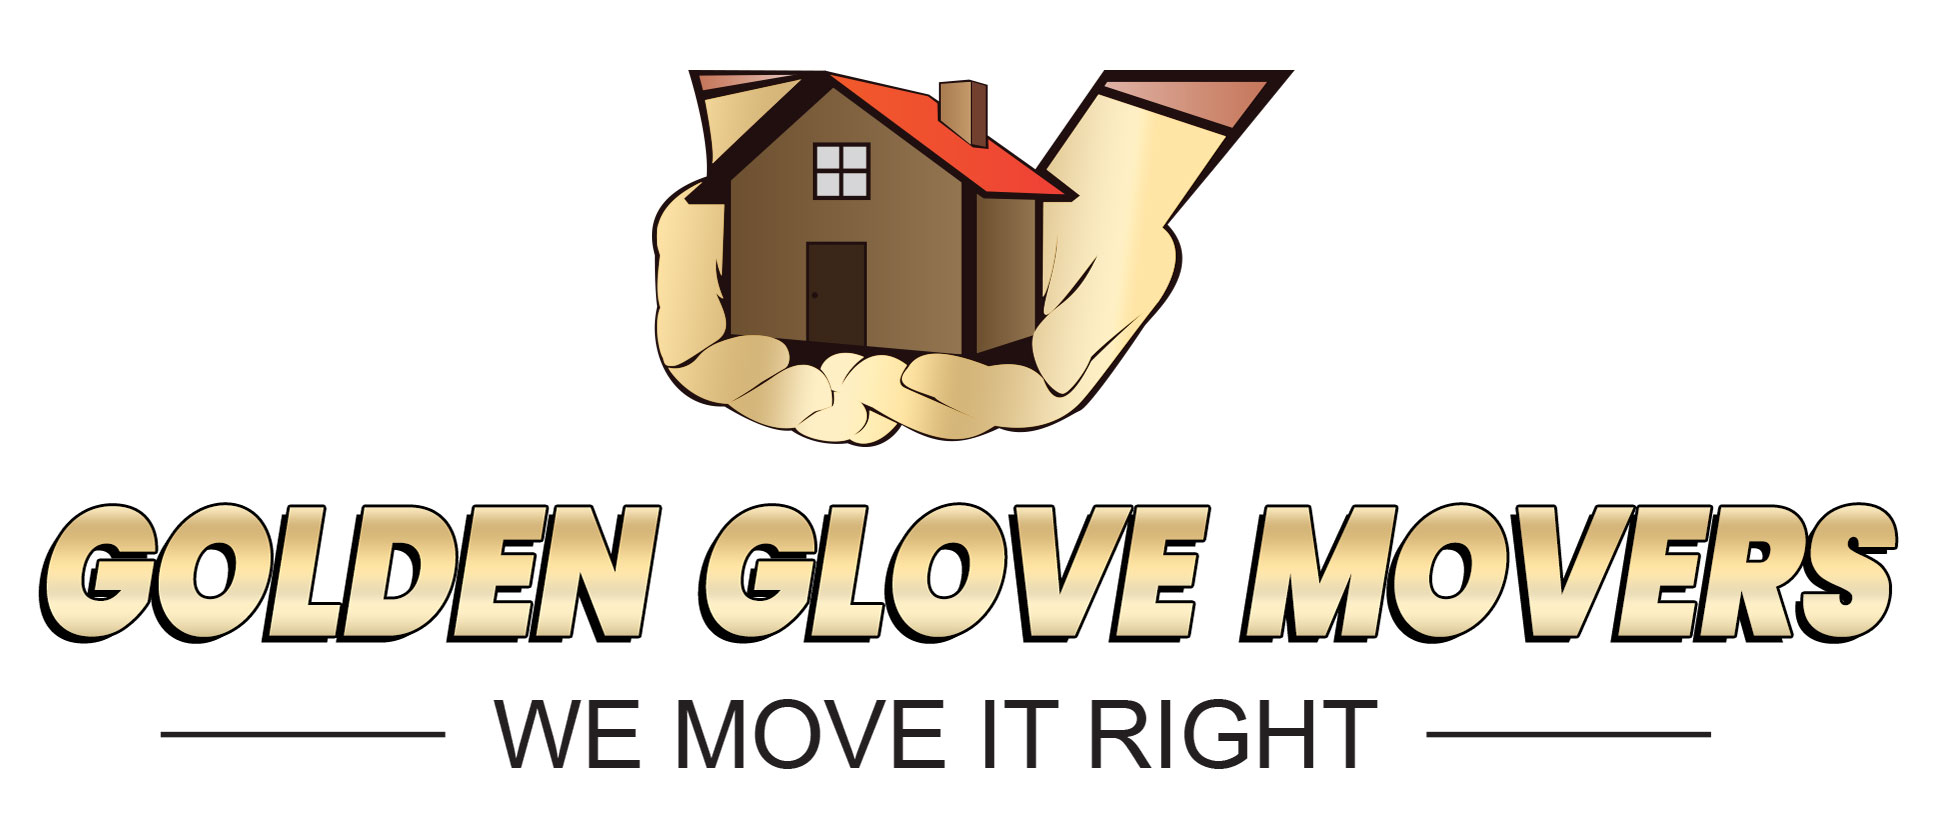 Golden Glove Movers Sets A New Name For Moving Companies In New Jersey